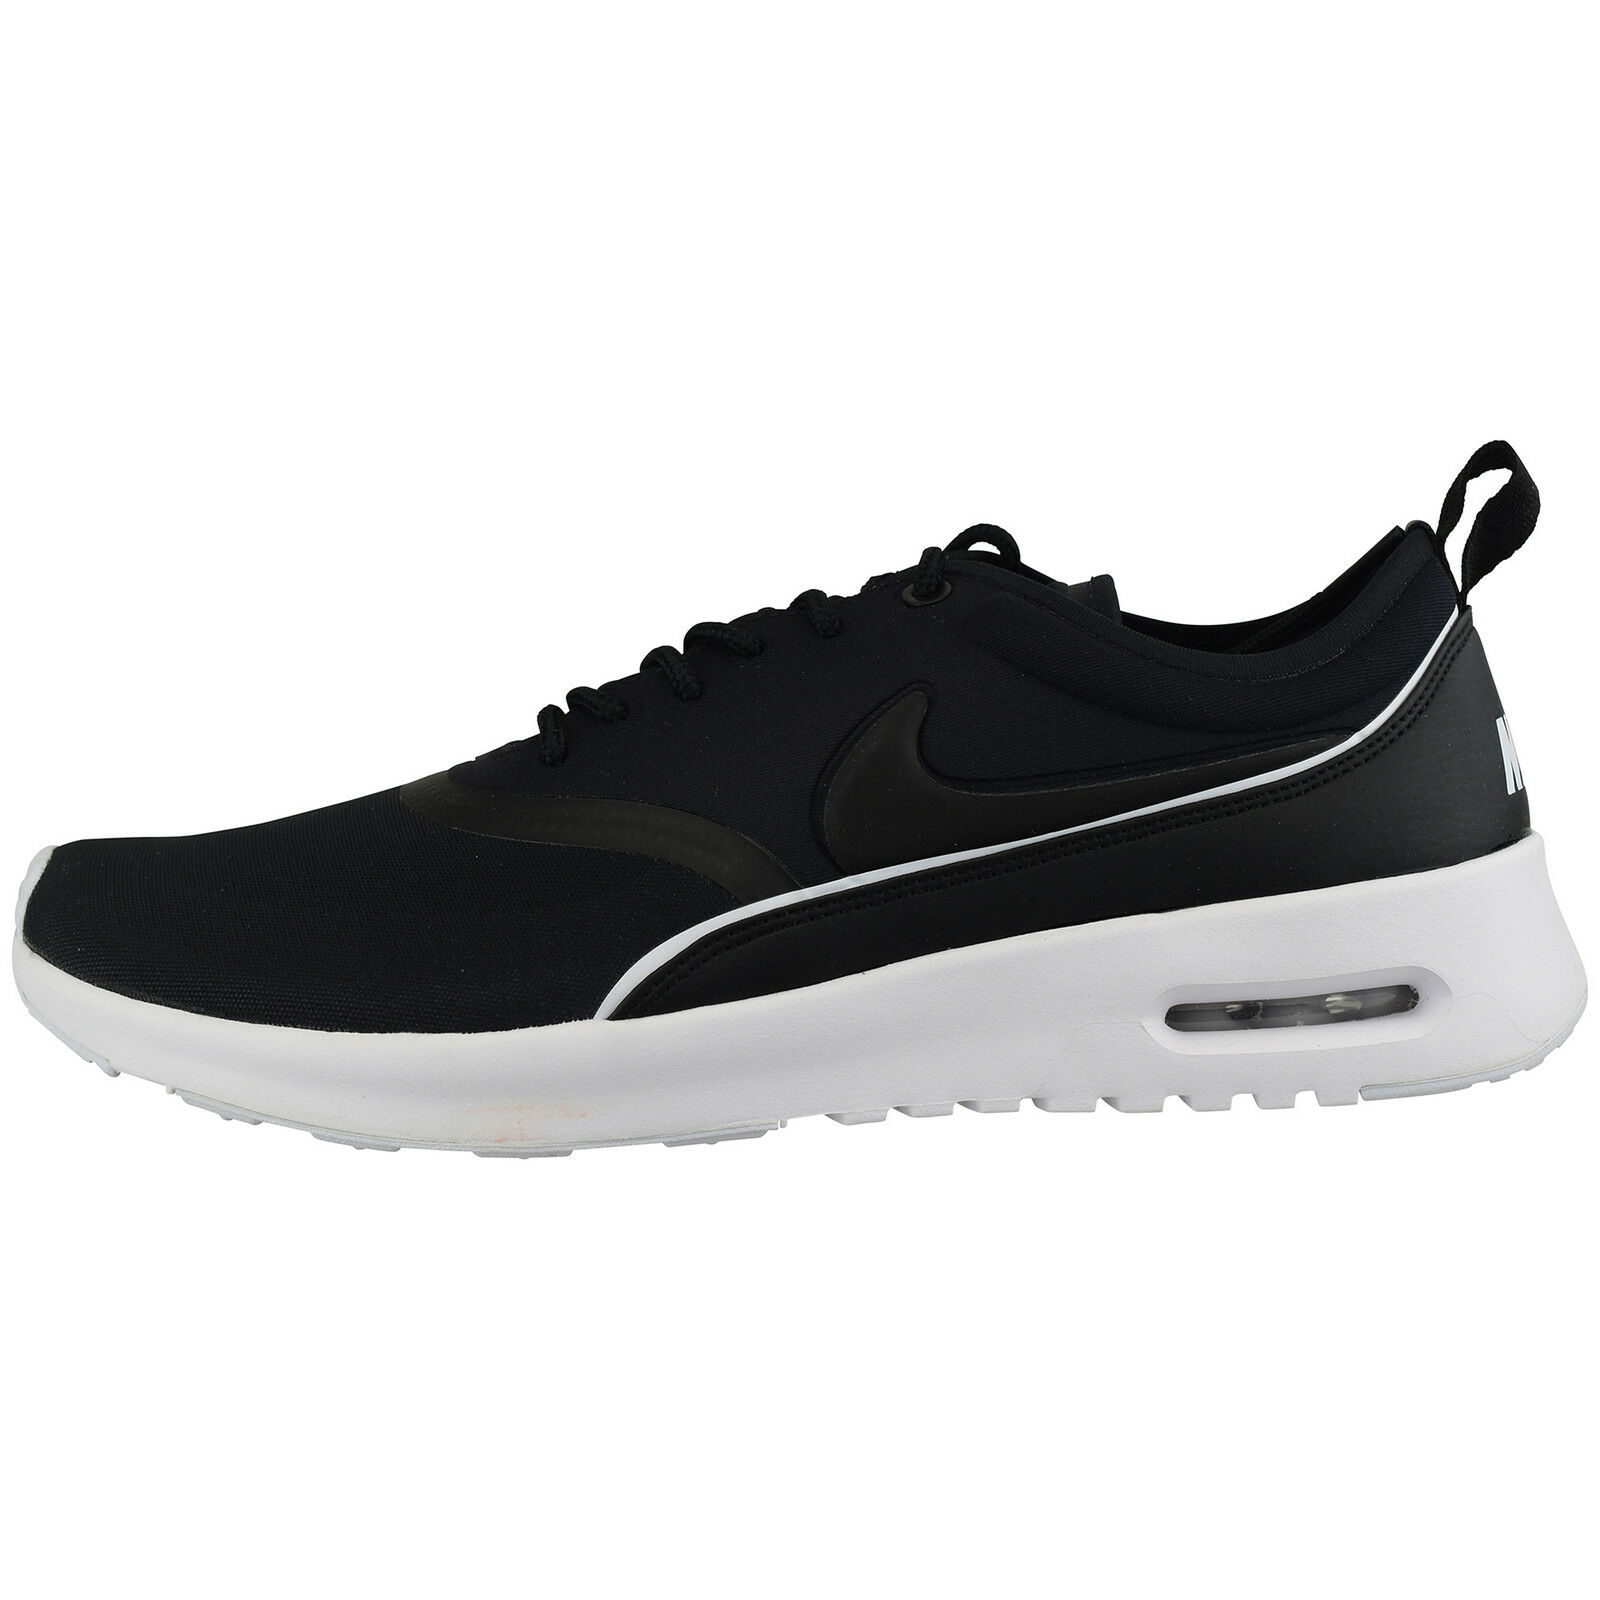 WMNS NIKE AIR MAX THEA Ultra 844926-001 Running Shoes Casual Trainers